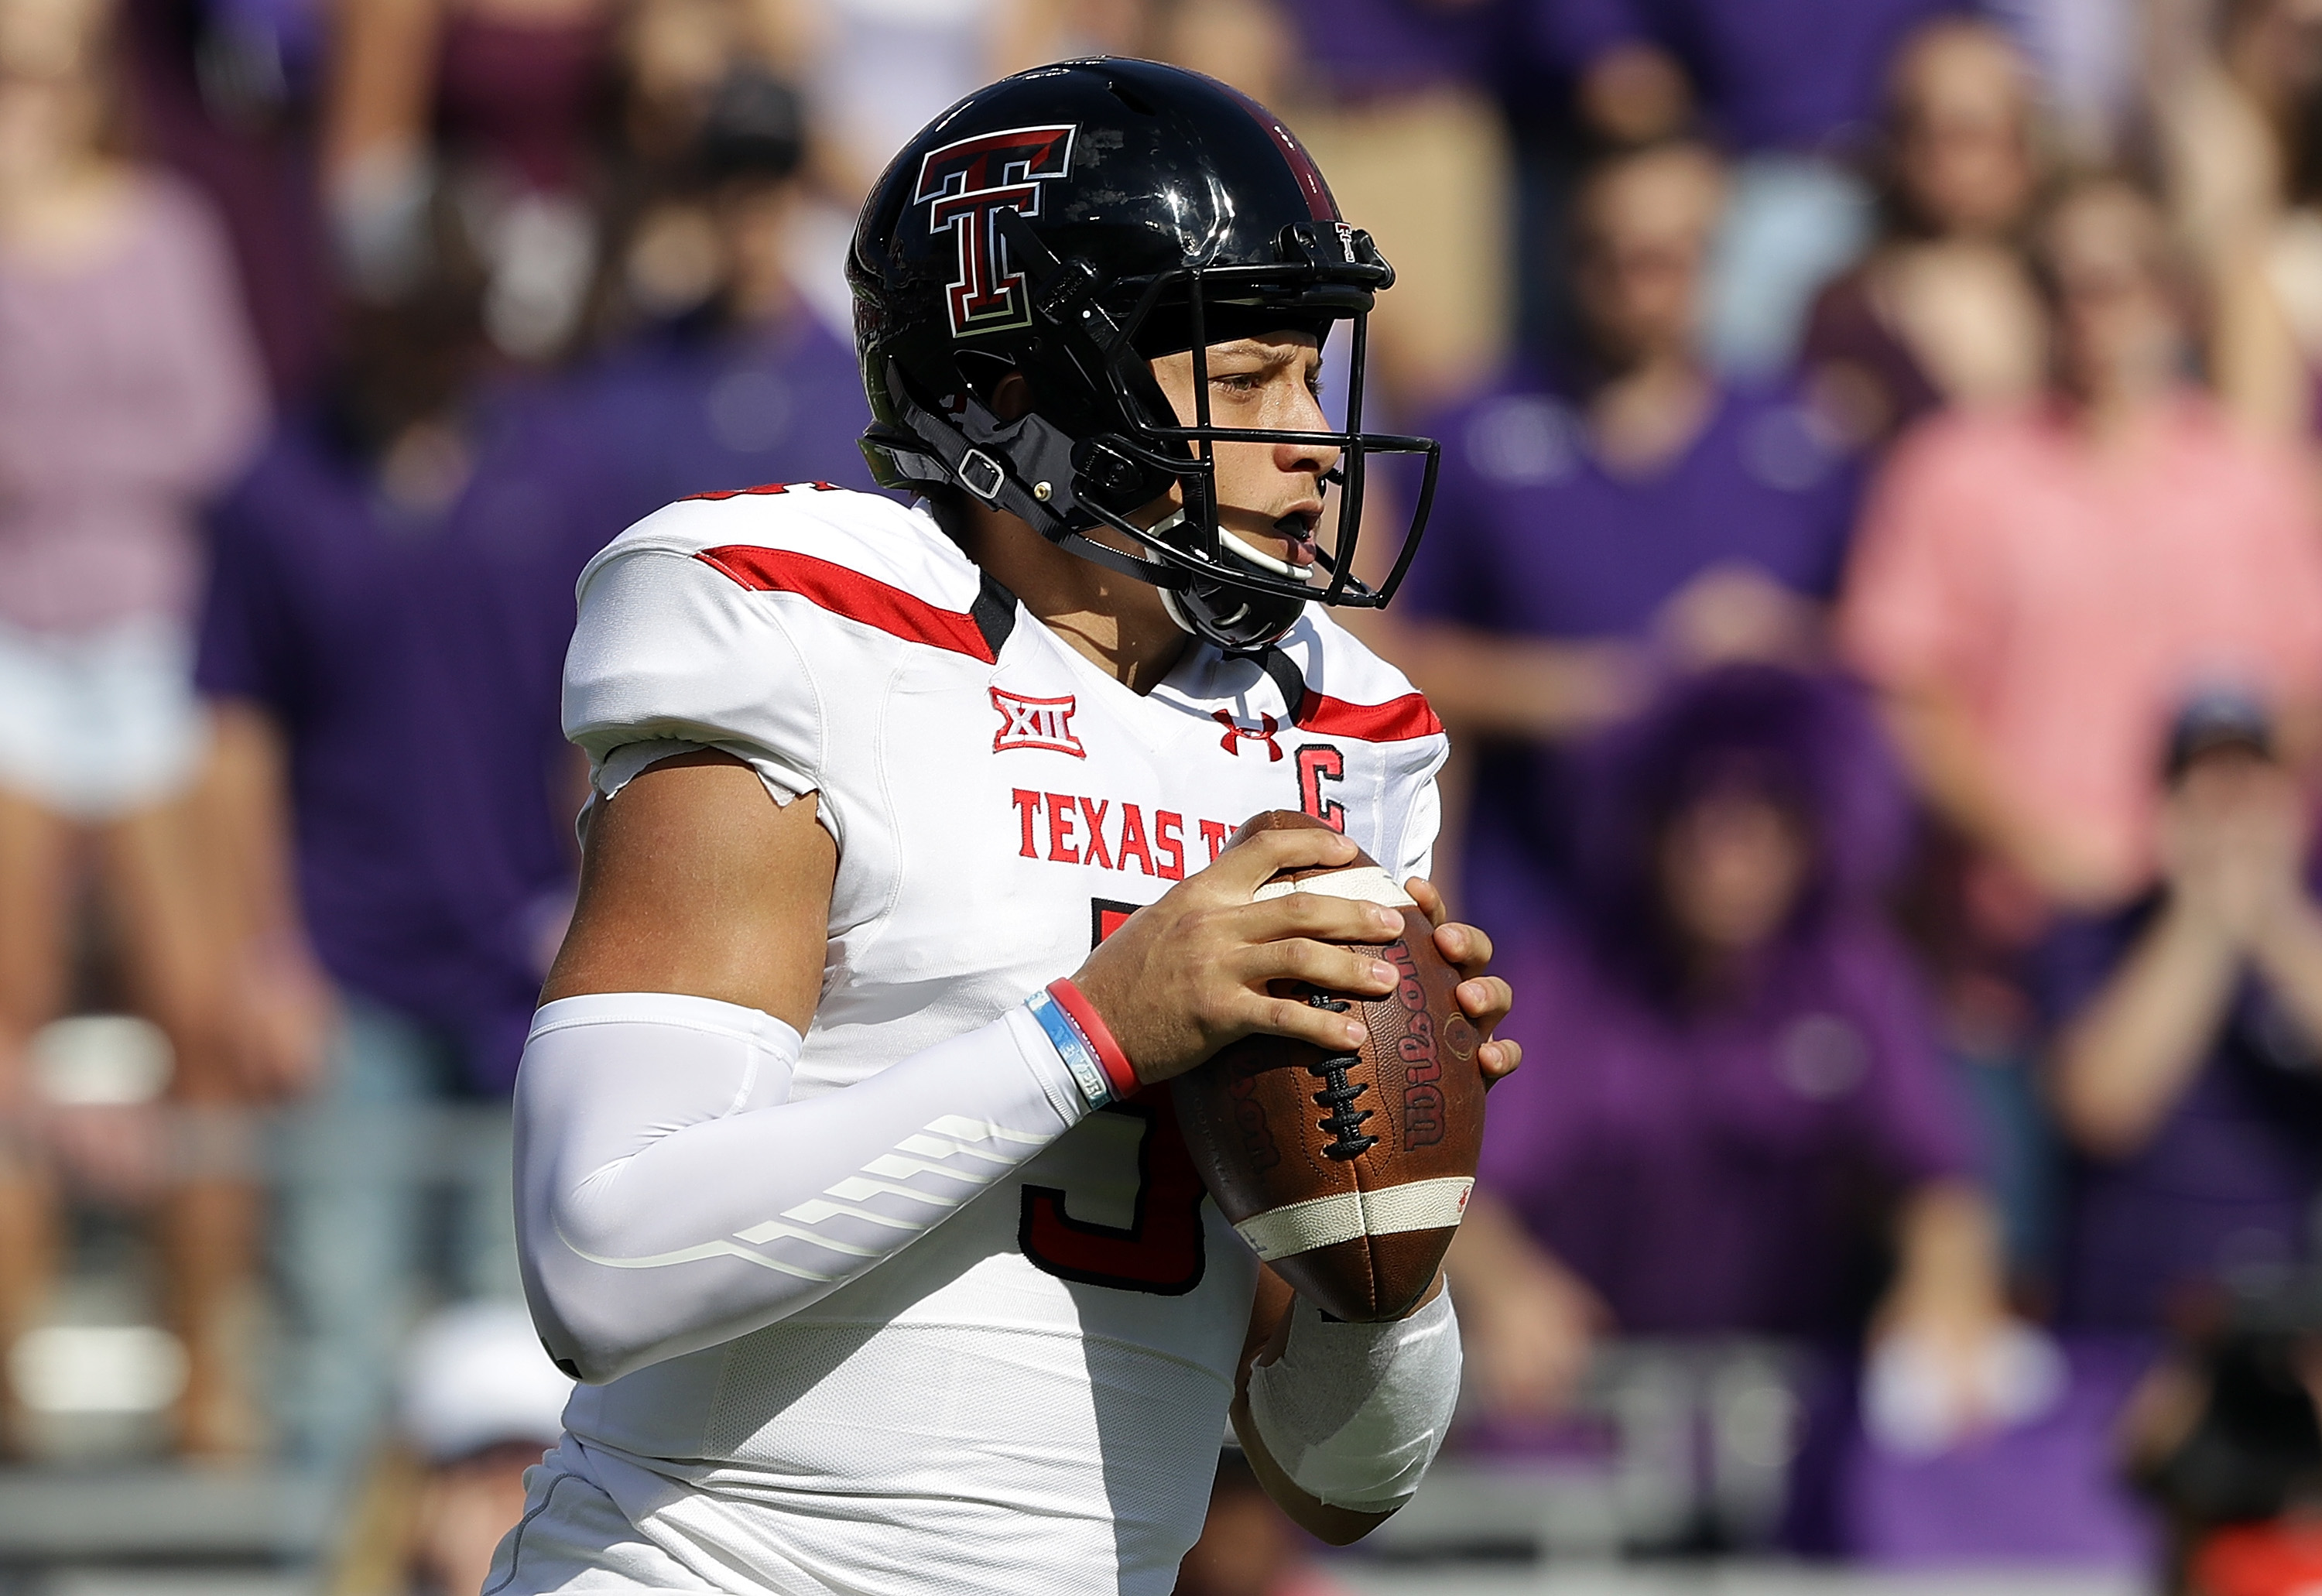 Patrick Mahomes of the Texas Tech Red Raiders could very well make a big splash at the NFL Scouting Combine.  (Photo by Ronald Martinez/Getty Images)